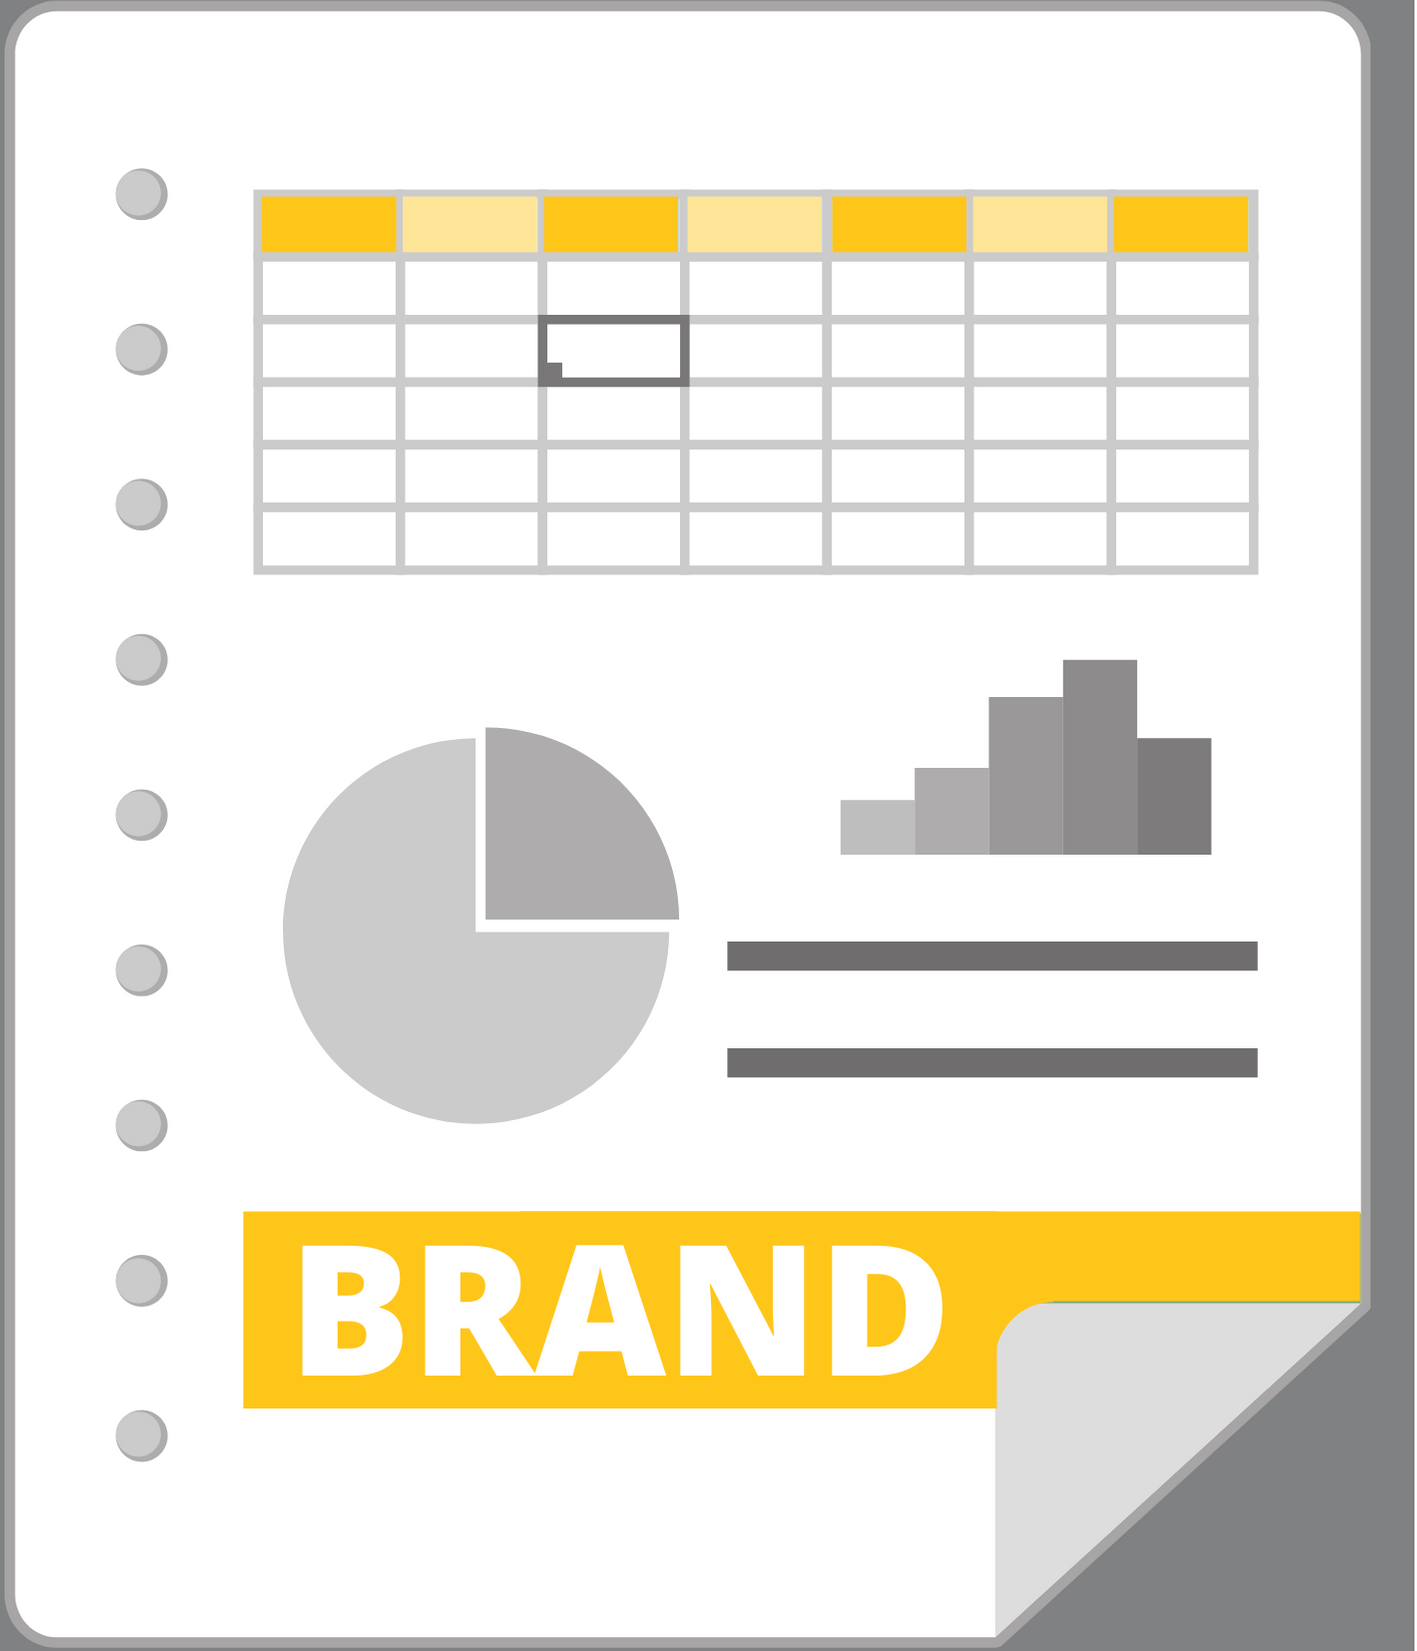 infographic showing grayscale spreadsheet gridlines, grayscale bar chart, grayscale pie chart, and yellow BRAND letters